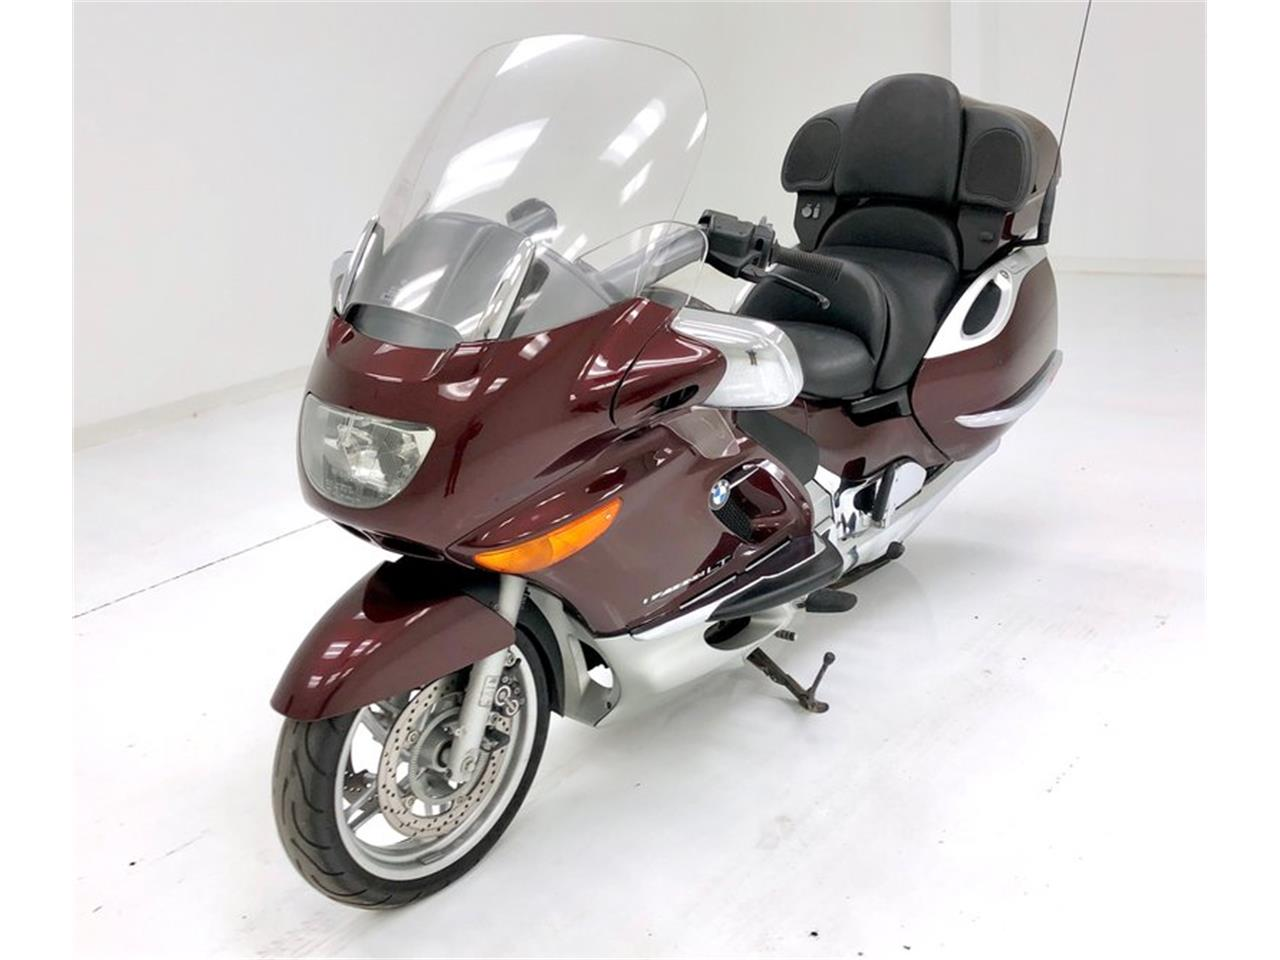 2000 BMW K1 (CC-1160168) for sale in Morgantown, Pennsylvania